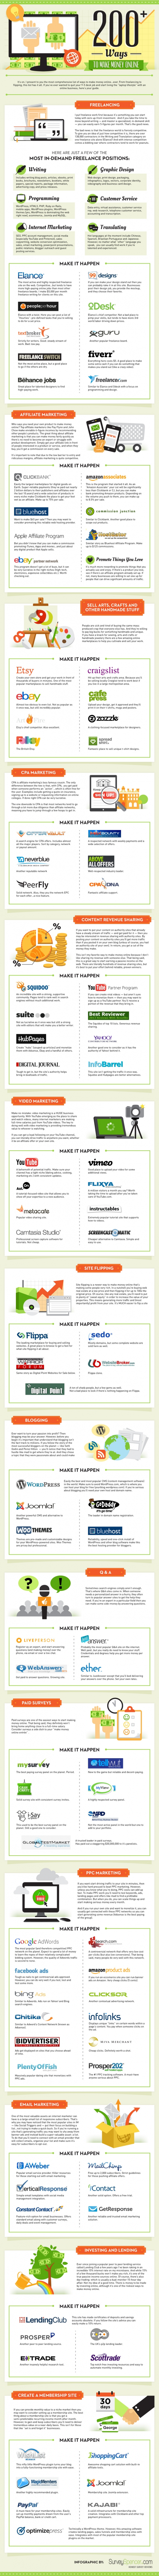 Make-Money-Online_infographic-620x10055